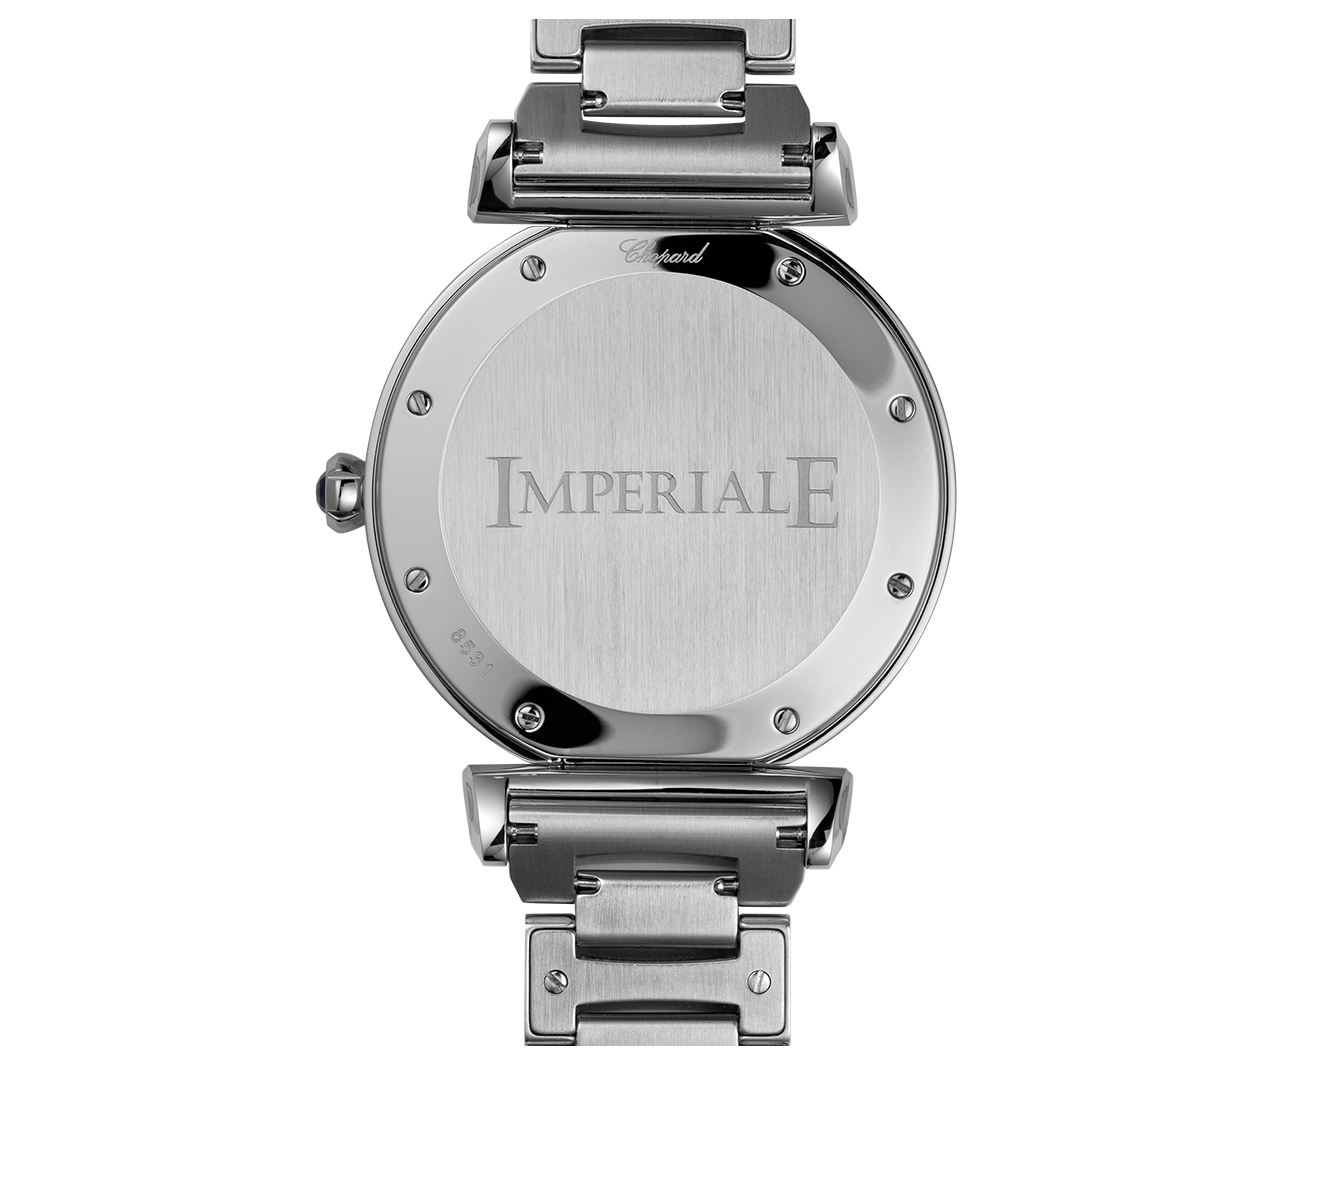 Часы Imperiale Chopard Imperiale 388531-3003 - фото 2 – Mercury